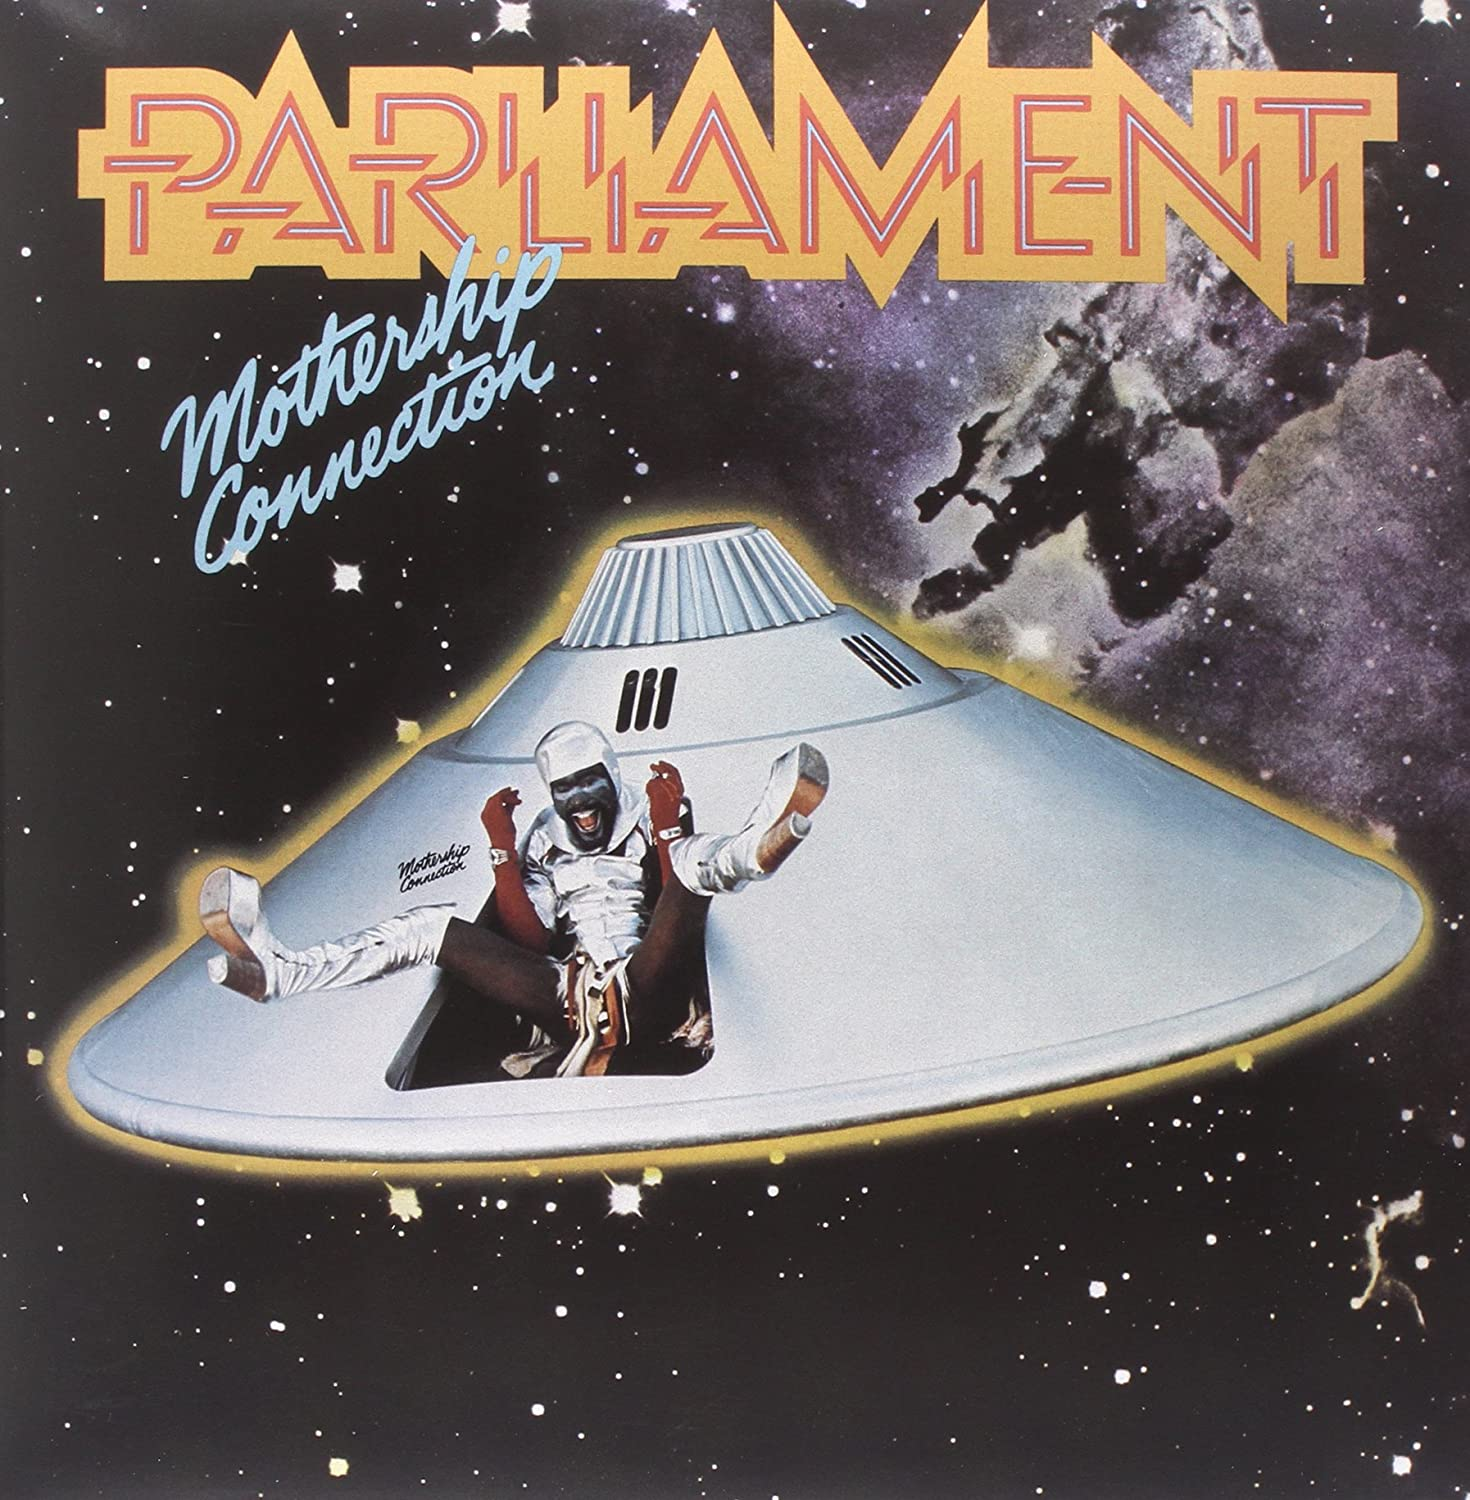 Parliament Mothership Connection Records Lps Vinyl And